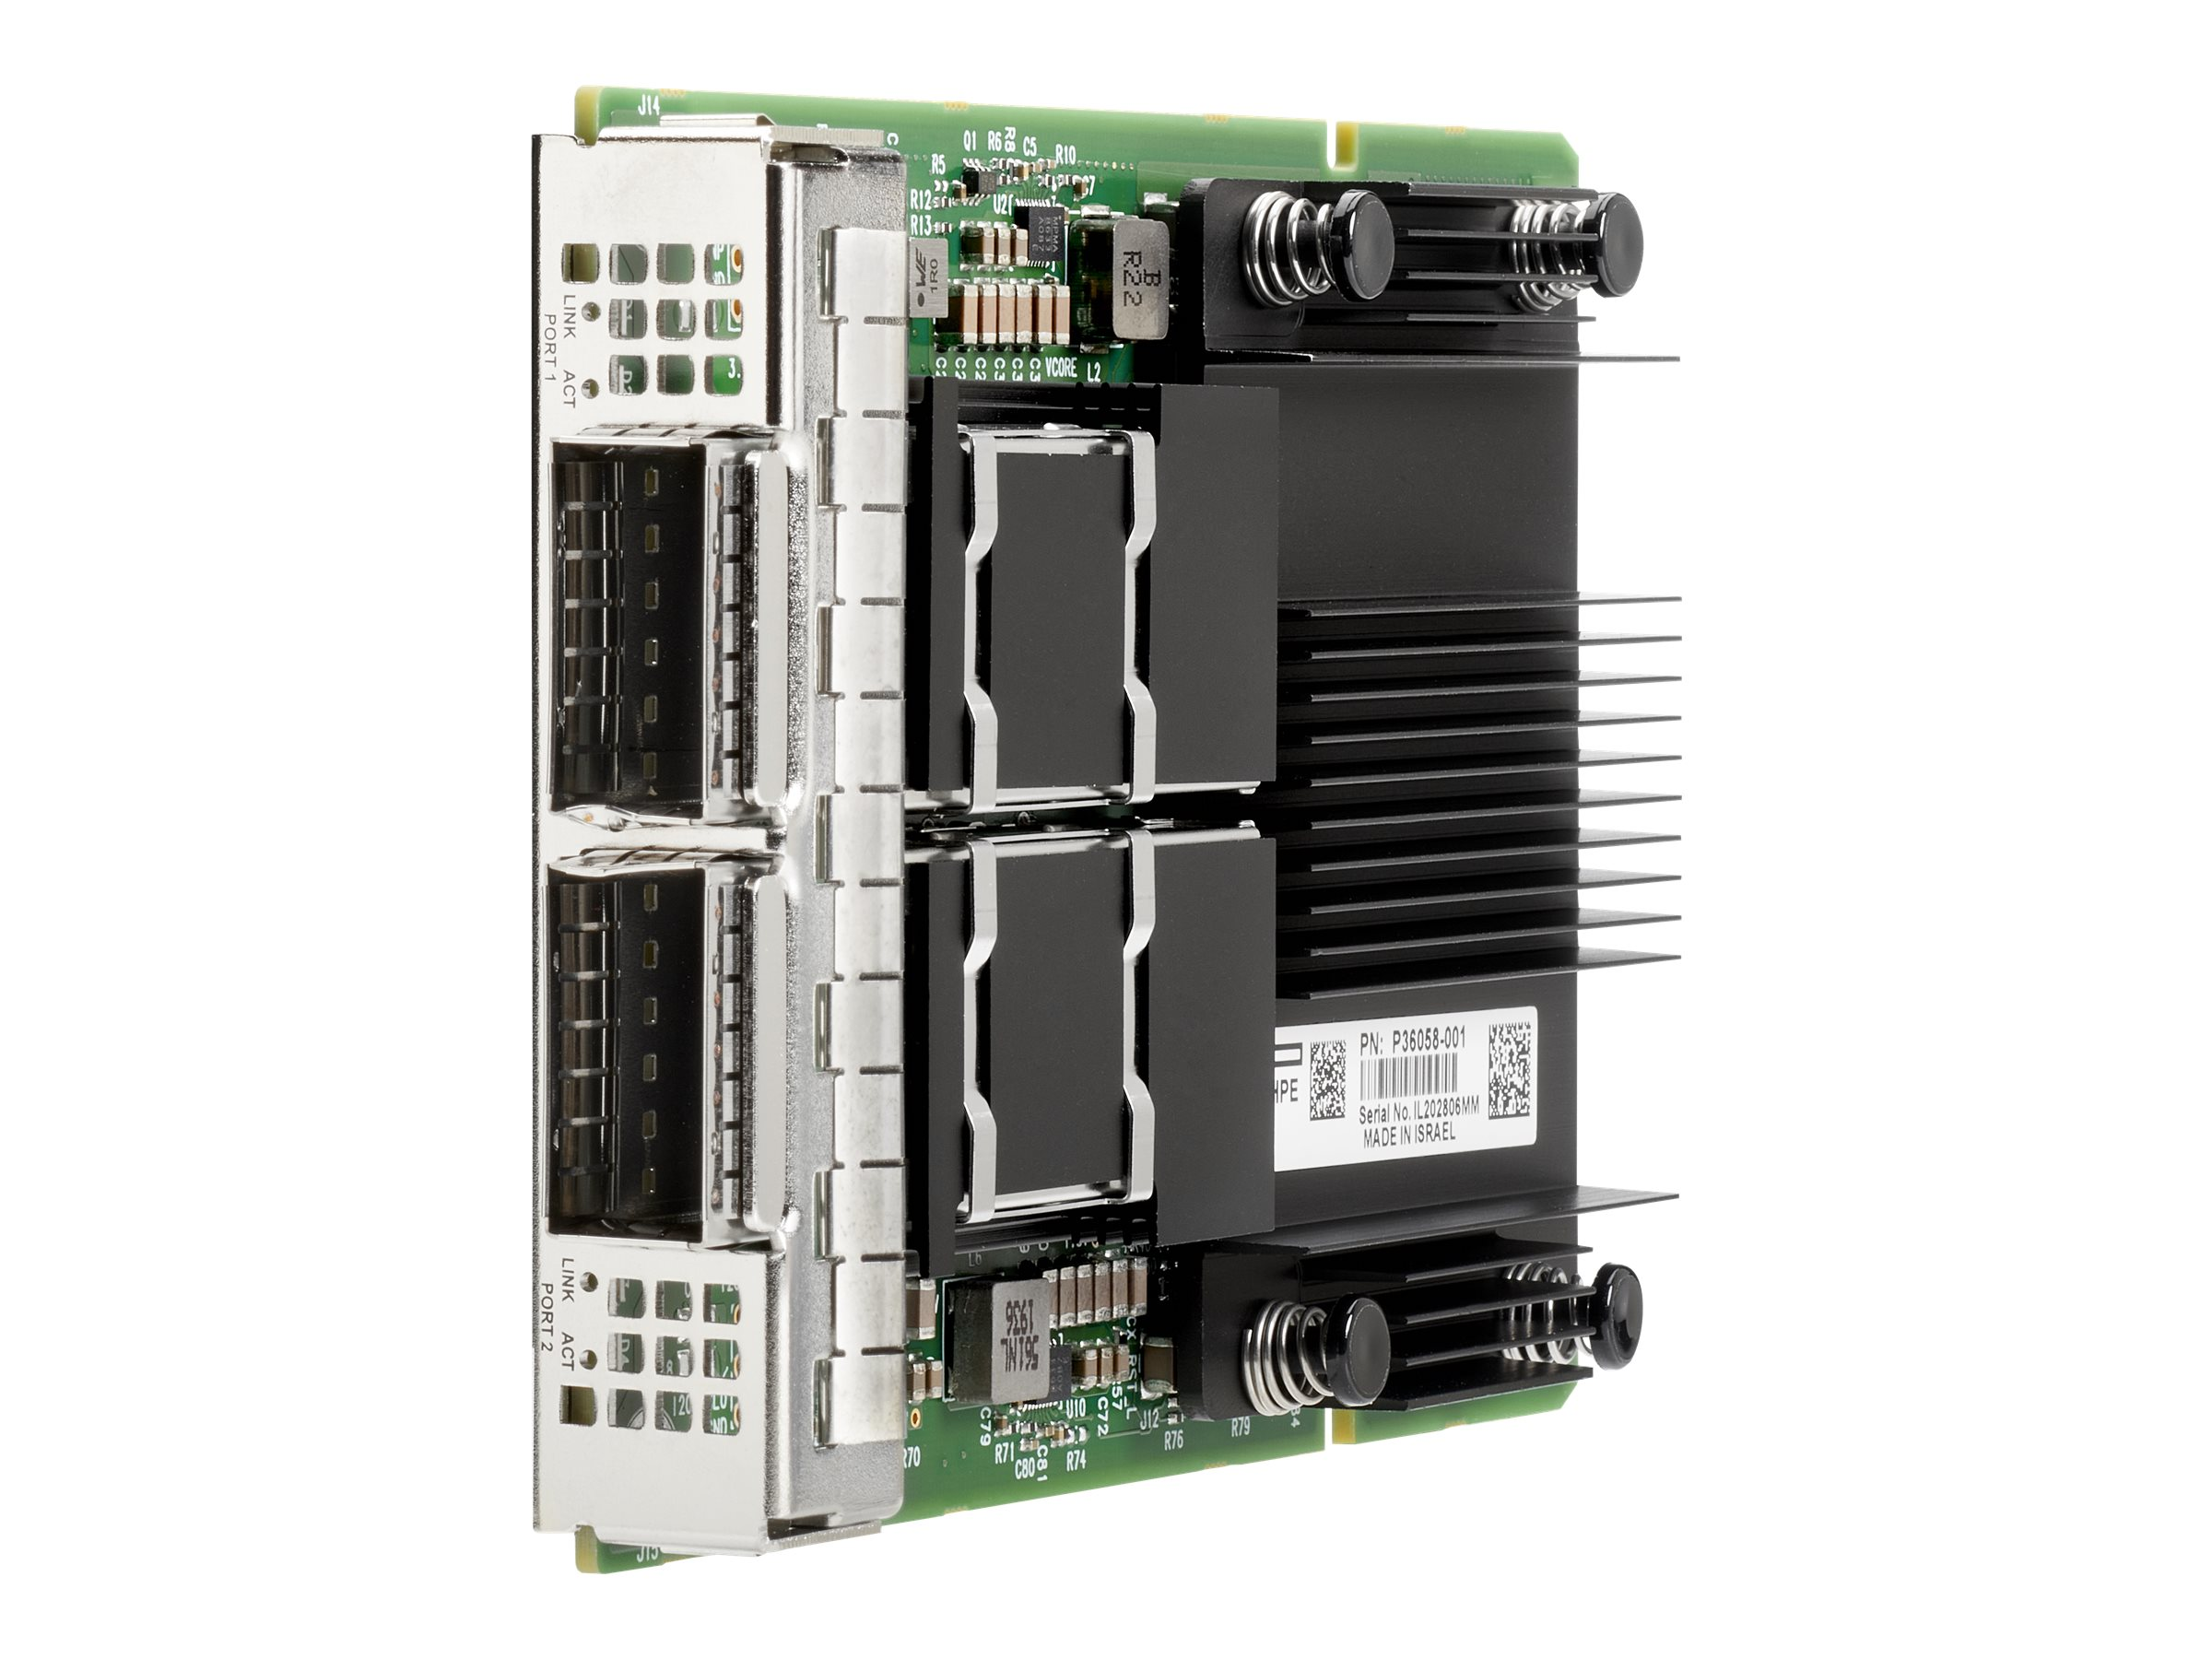 HPE InfiniBand HDR MCX653436A-HDAI - network adapter - PCIe 4.0 x16 - 200Gb Ethernet / 200Gb Infiniband QSFP56 x 2